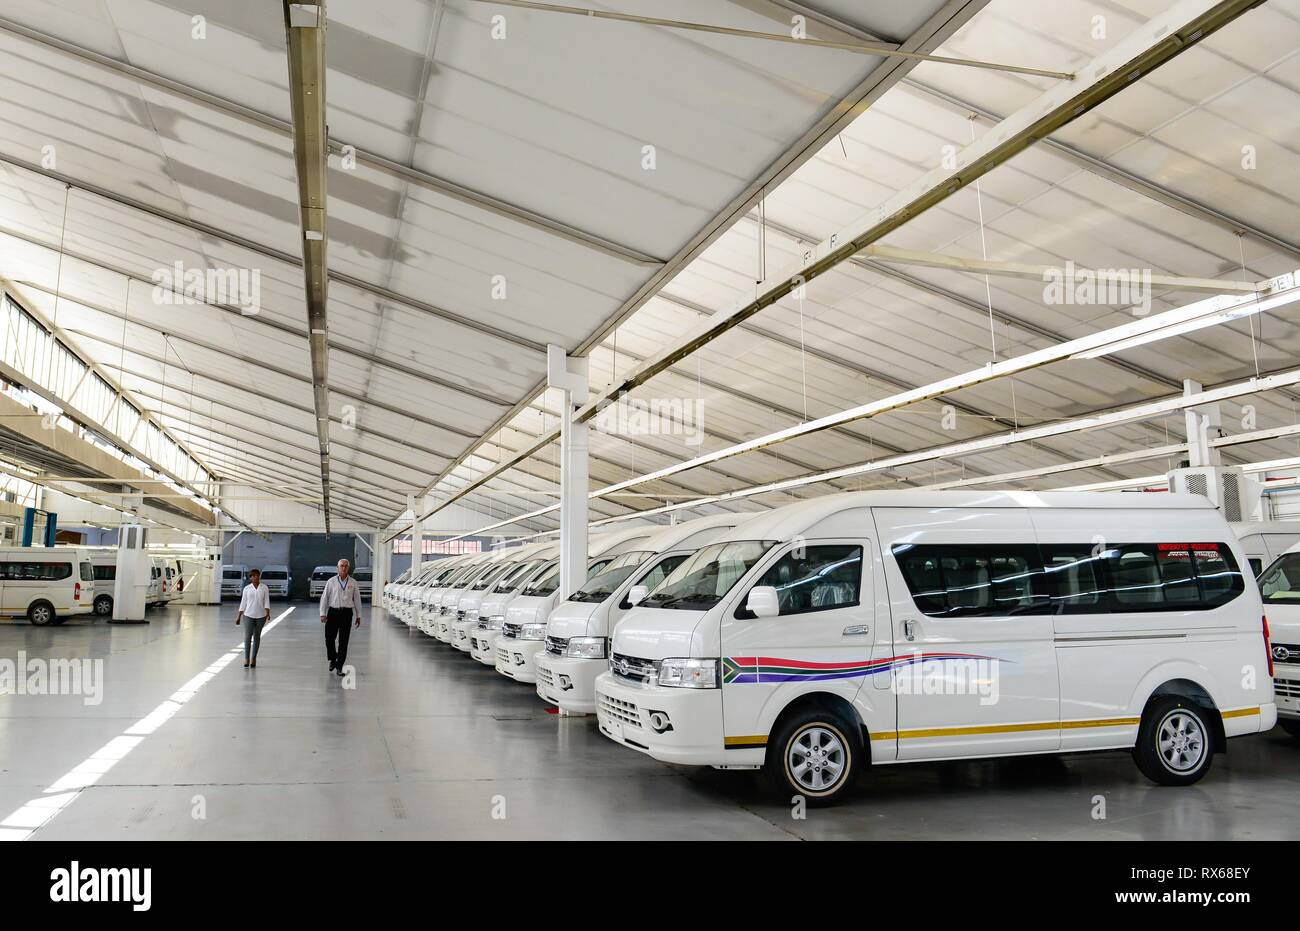 Beijing, Johannesburg, China. 19th Apr, 2016. Two staff members walk past buses at the automobile plant of Beijing Automobile Works Co., Ltd (BAW), known as BAW South Africa in Springs, west of Johannesburg, on April 19, 2016. Credit: Zhai Jianlan/Xinhua/Alamy Live News - Stock Image